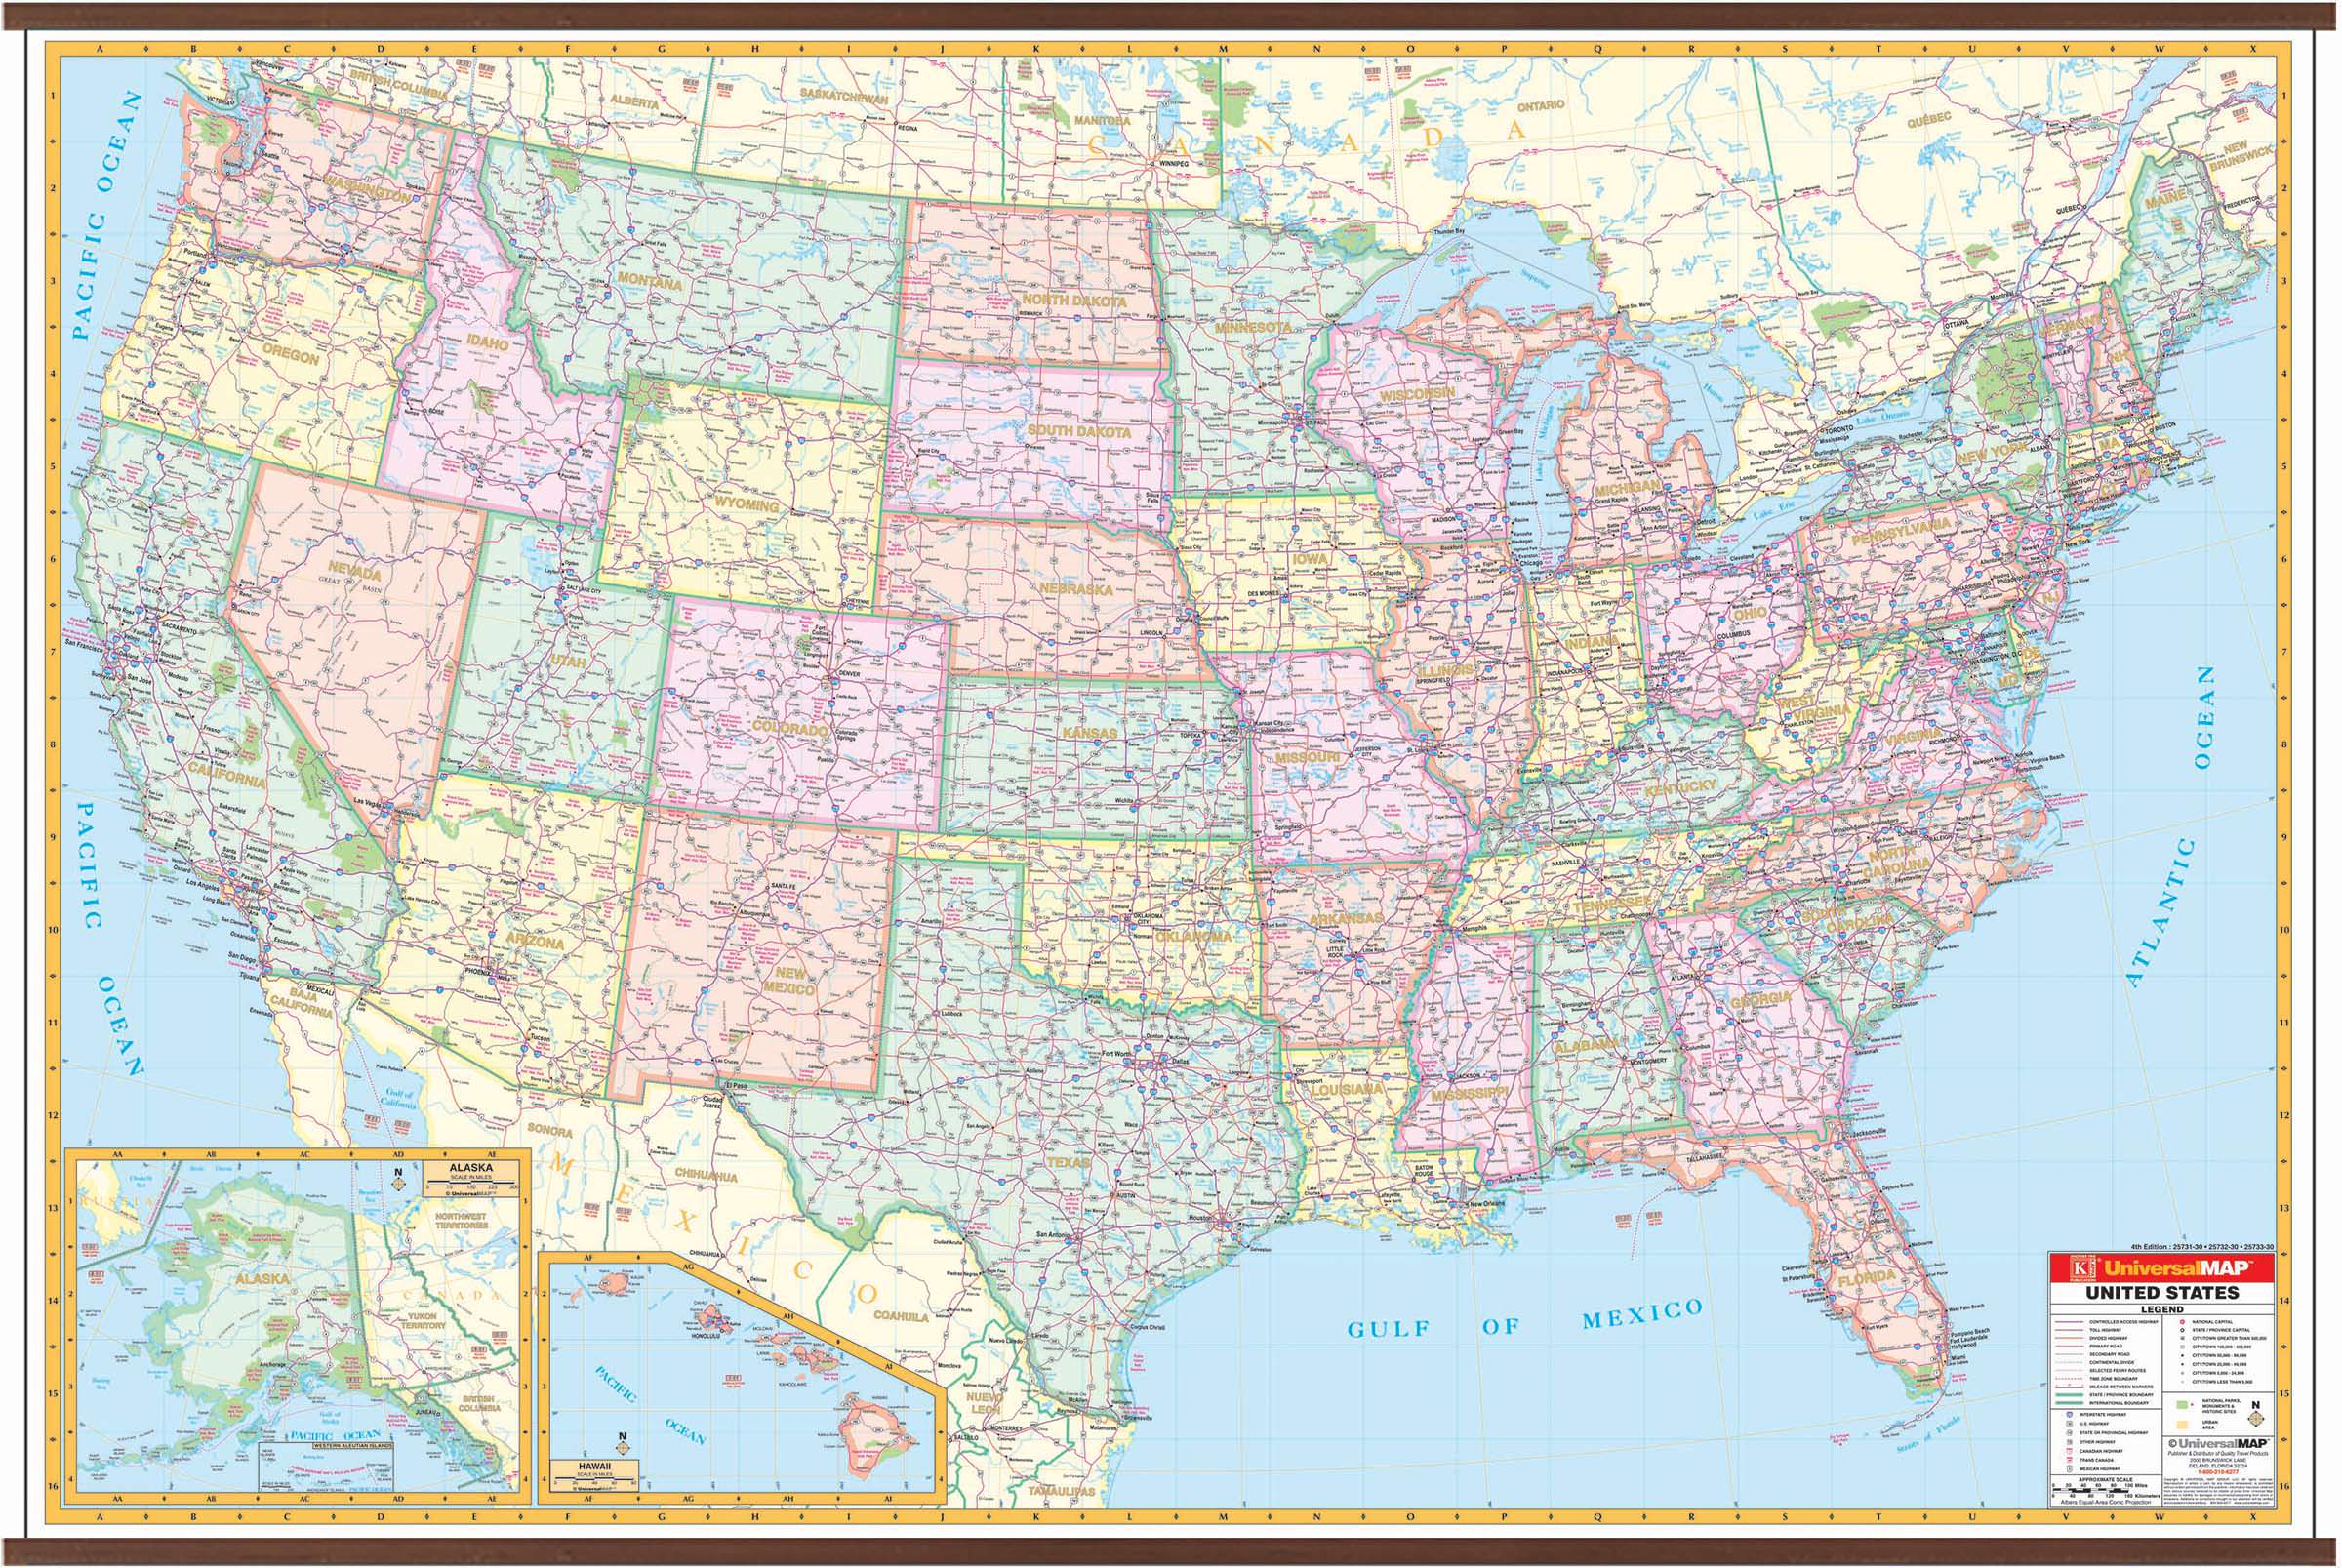 US Interstate Wall Map – KAPPA MAP GROUP